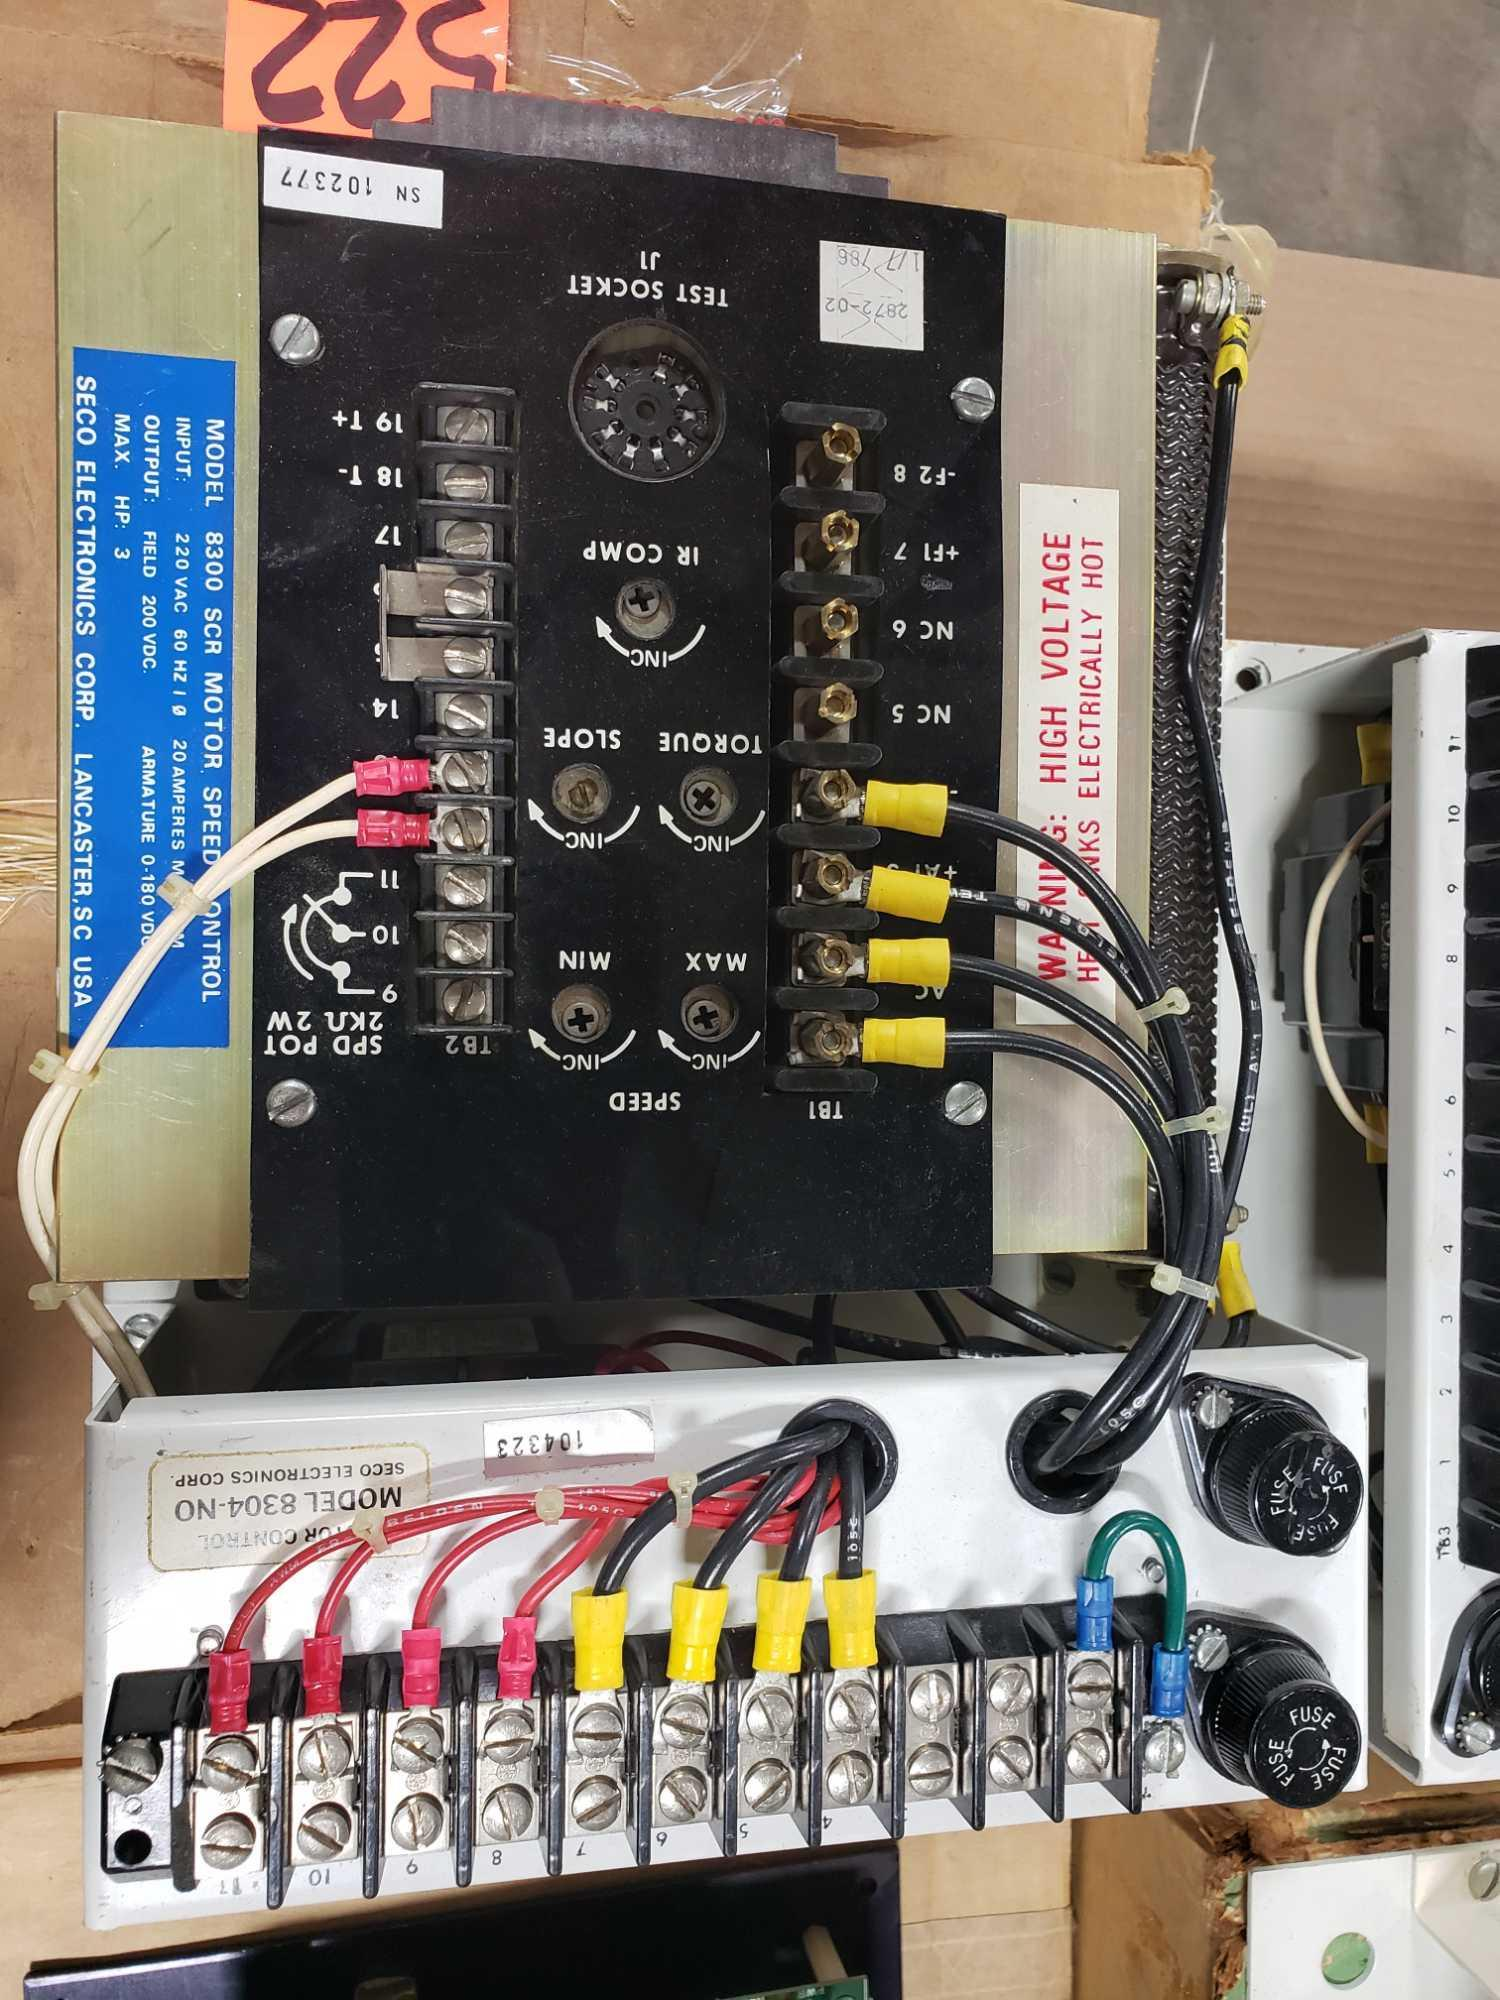 Seco Electronics model 8300 SCR motor control part 8304-N0.. New in box. - Image 4 of 4